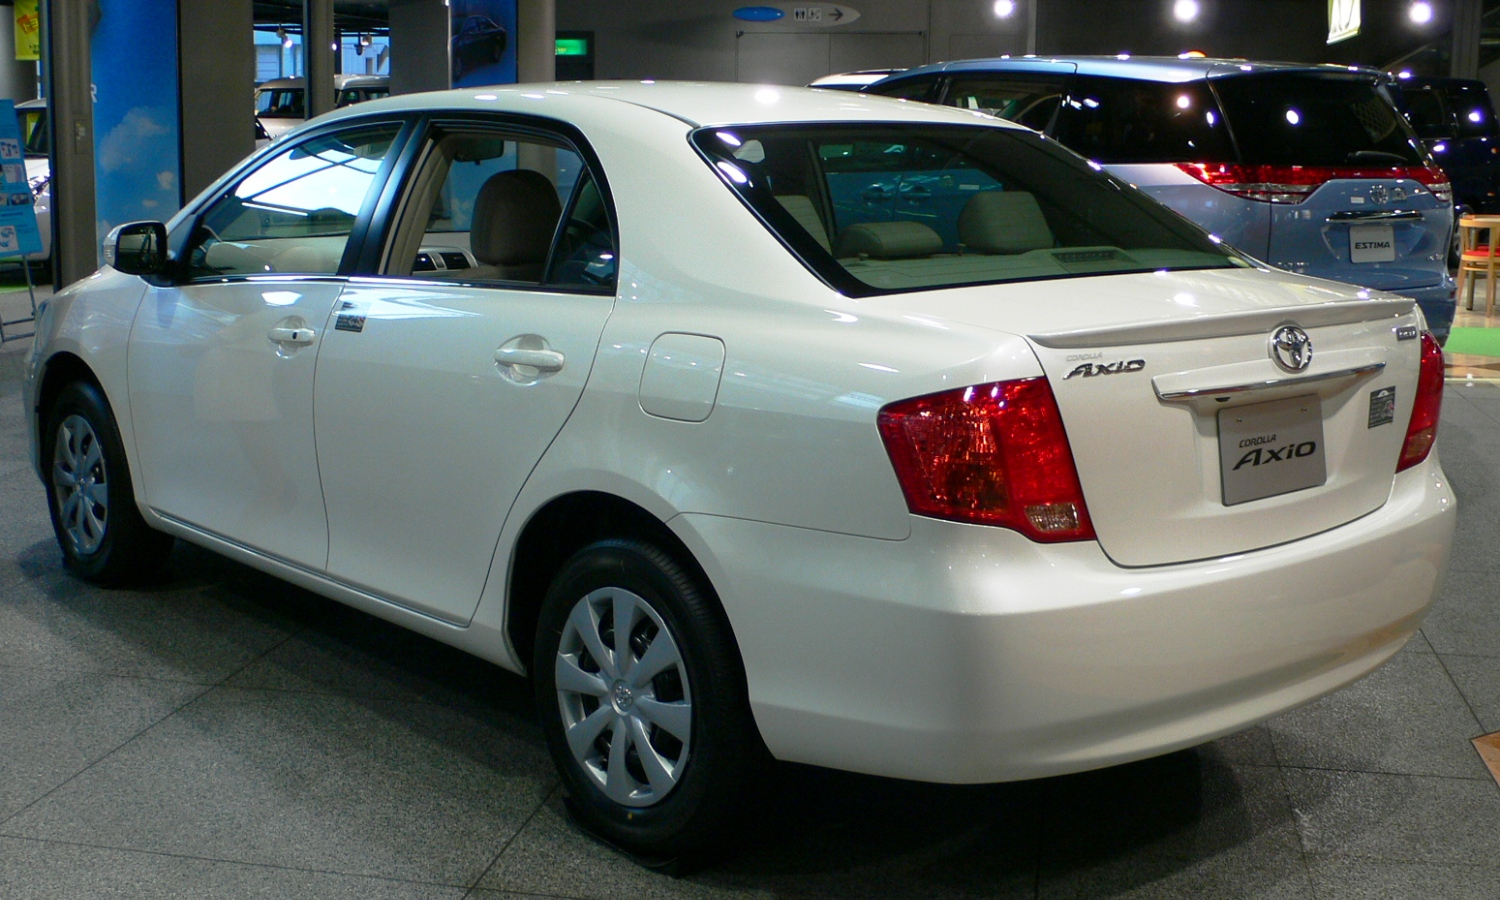 Toyota corolla axio 2011 photo - 1